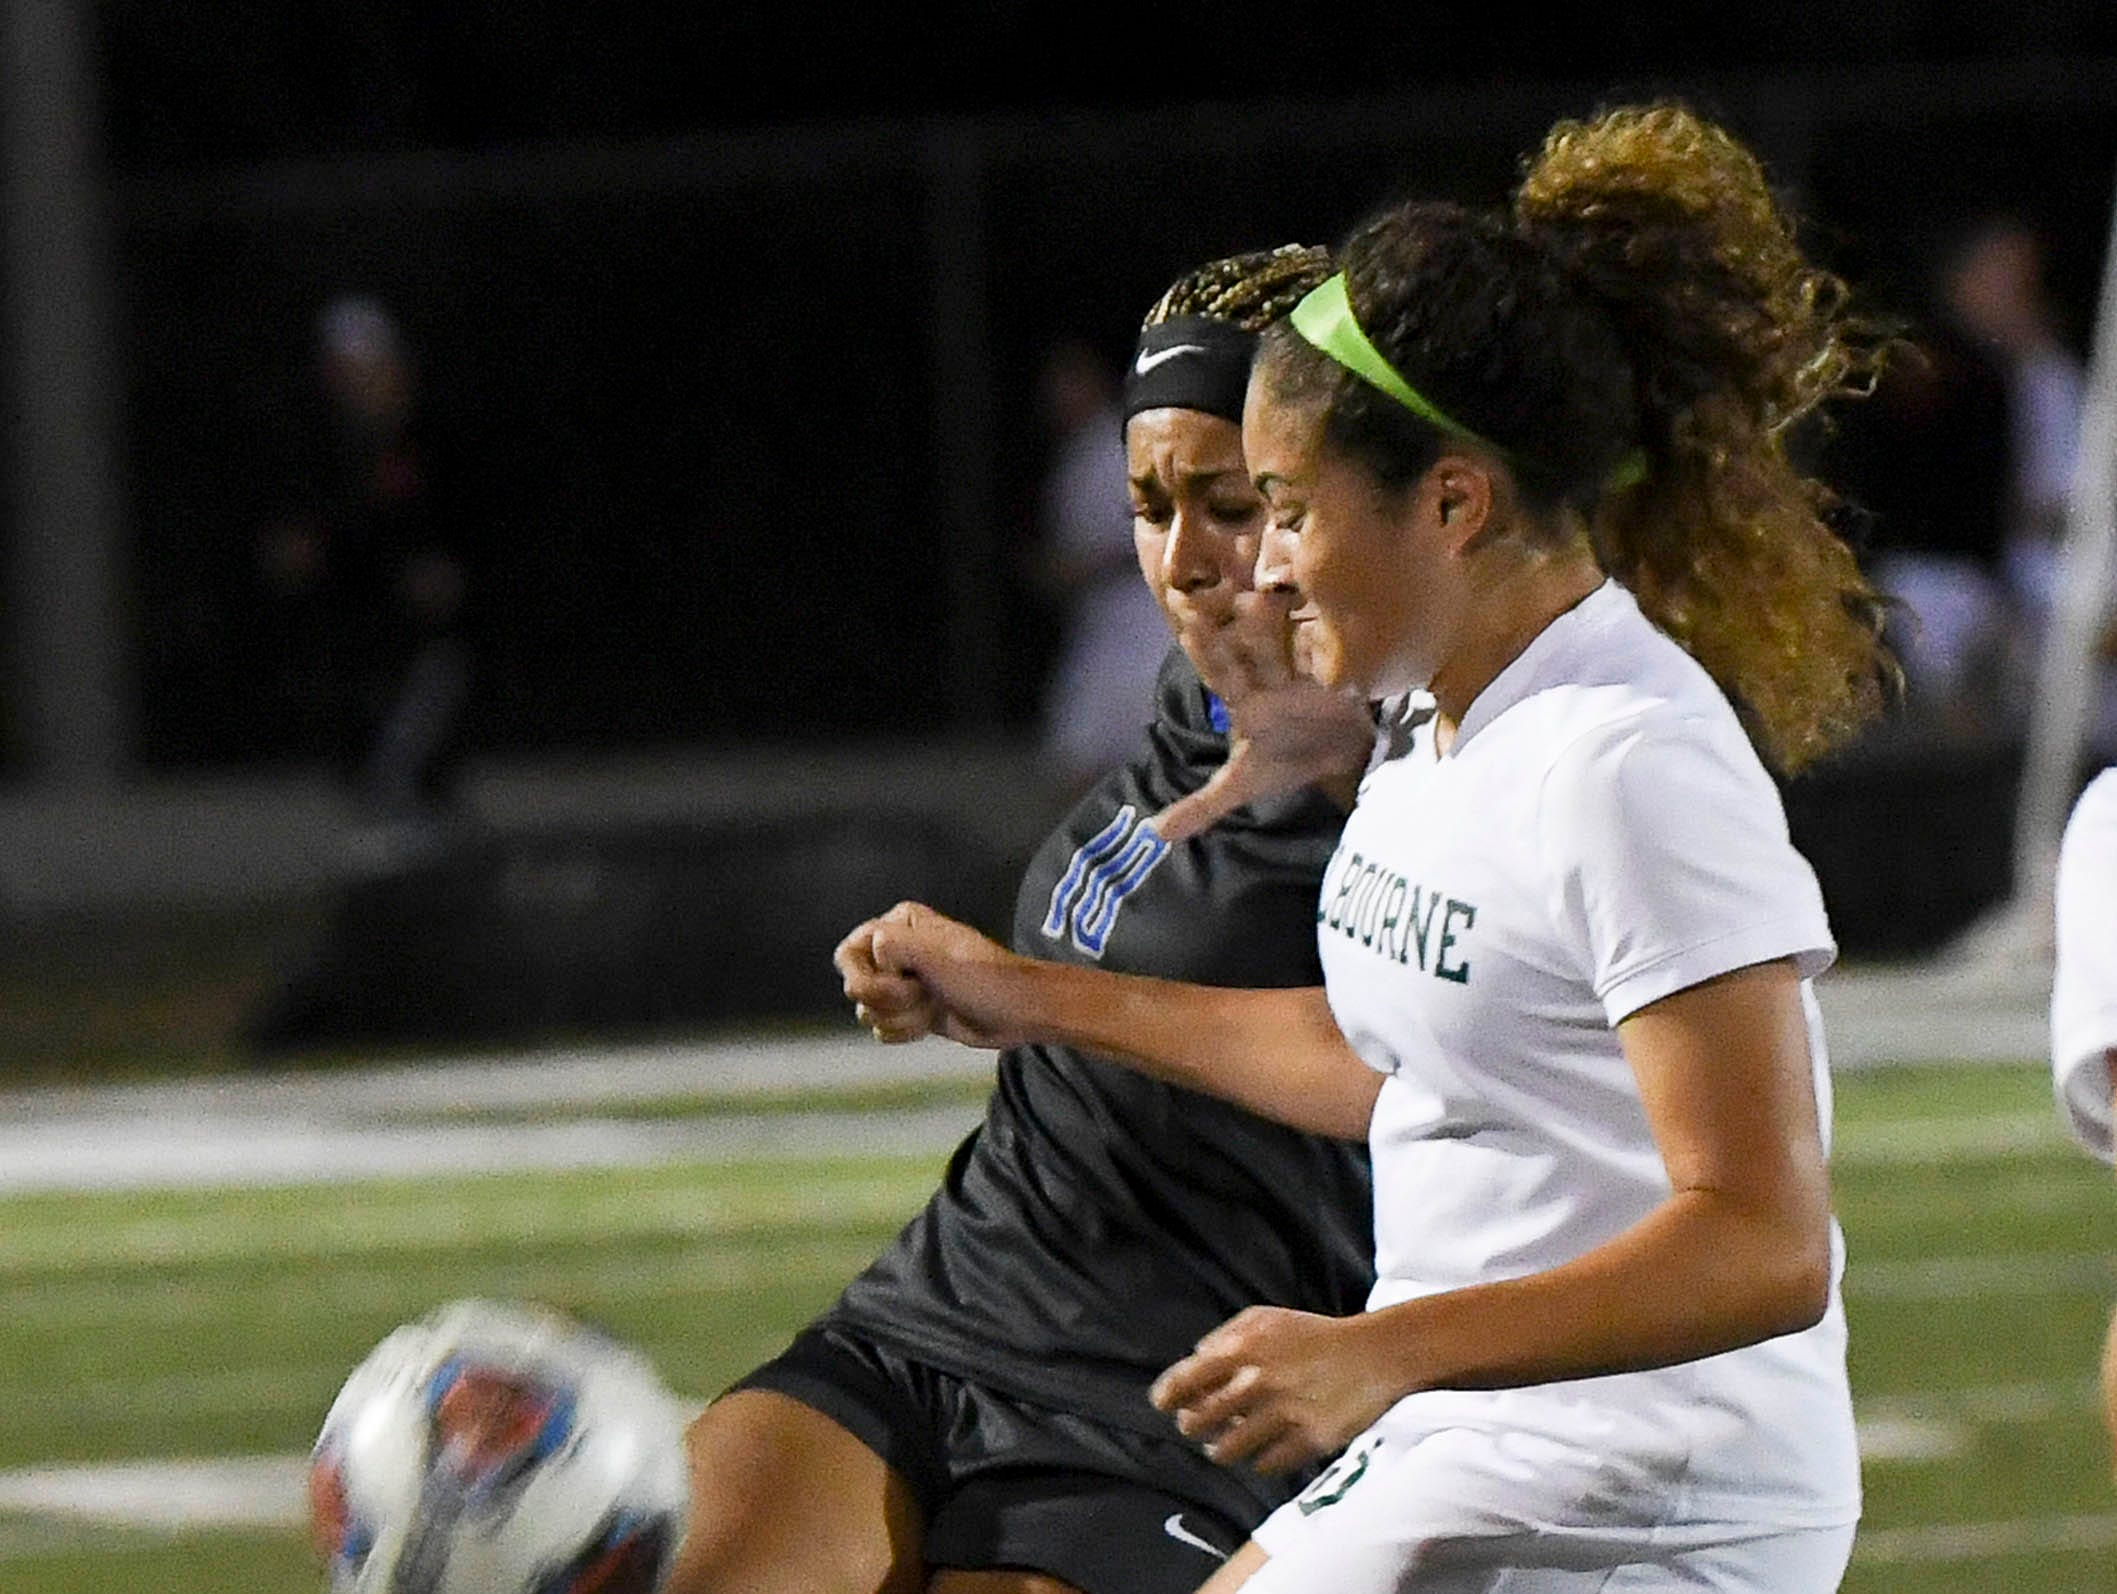 Maya Gordon of Cypress Bay directs the ball away from Melbourne's Natalie Horde during Thursday's game in Melbourne